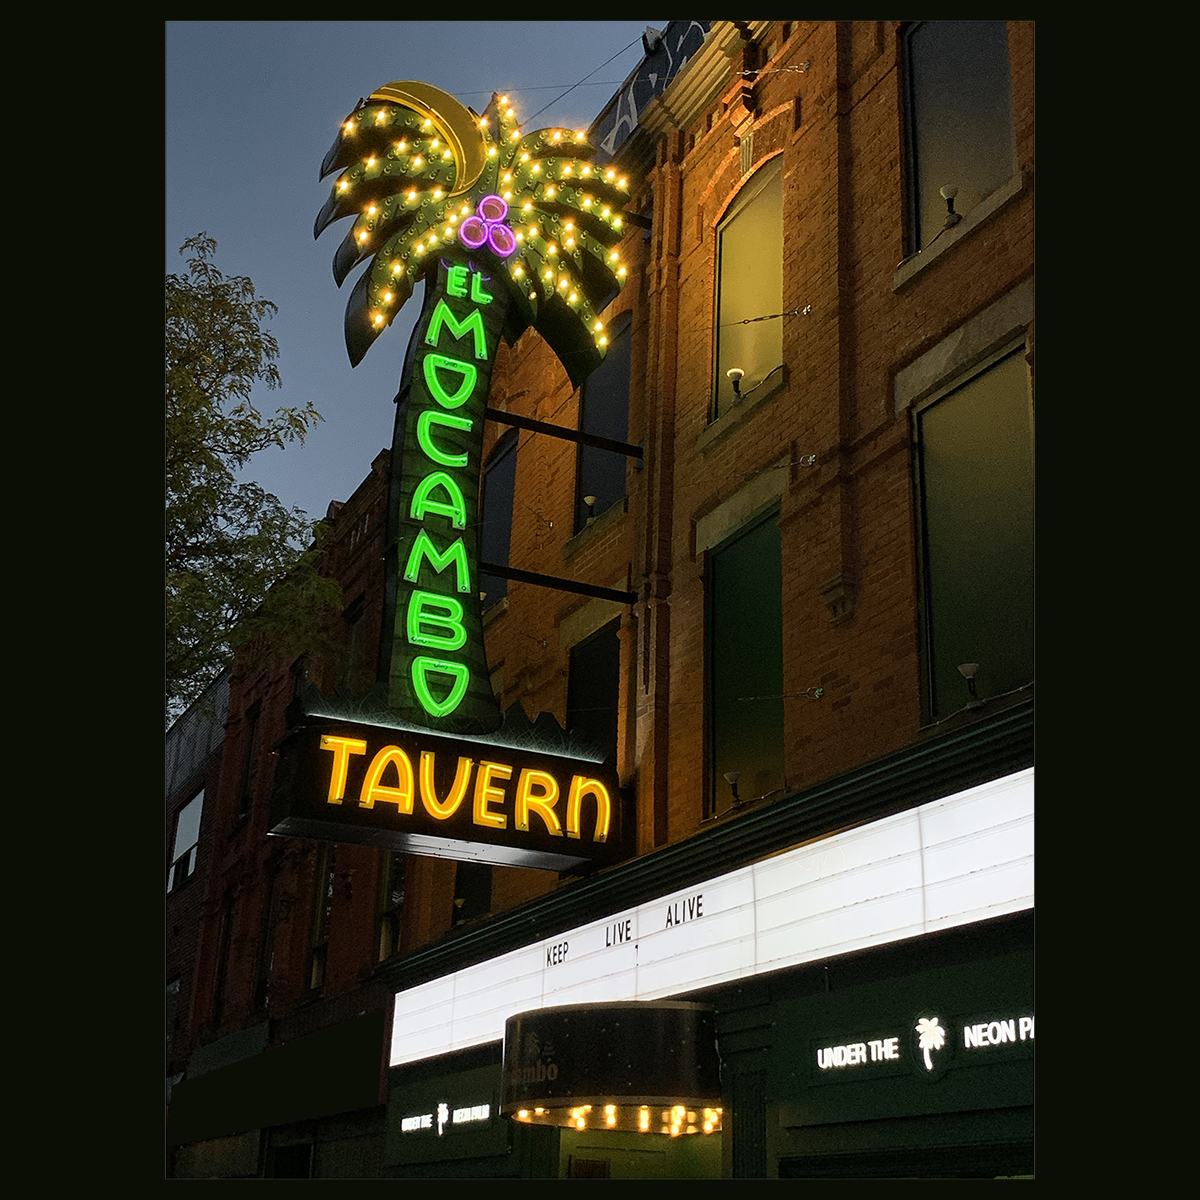 The Legendary El Mocambo Is Set To Officially ReopenOctober 30with Our Lady Peace